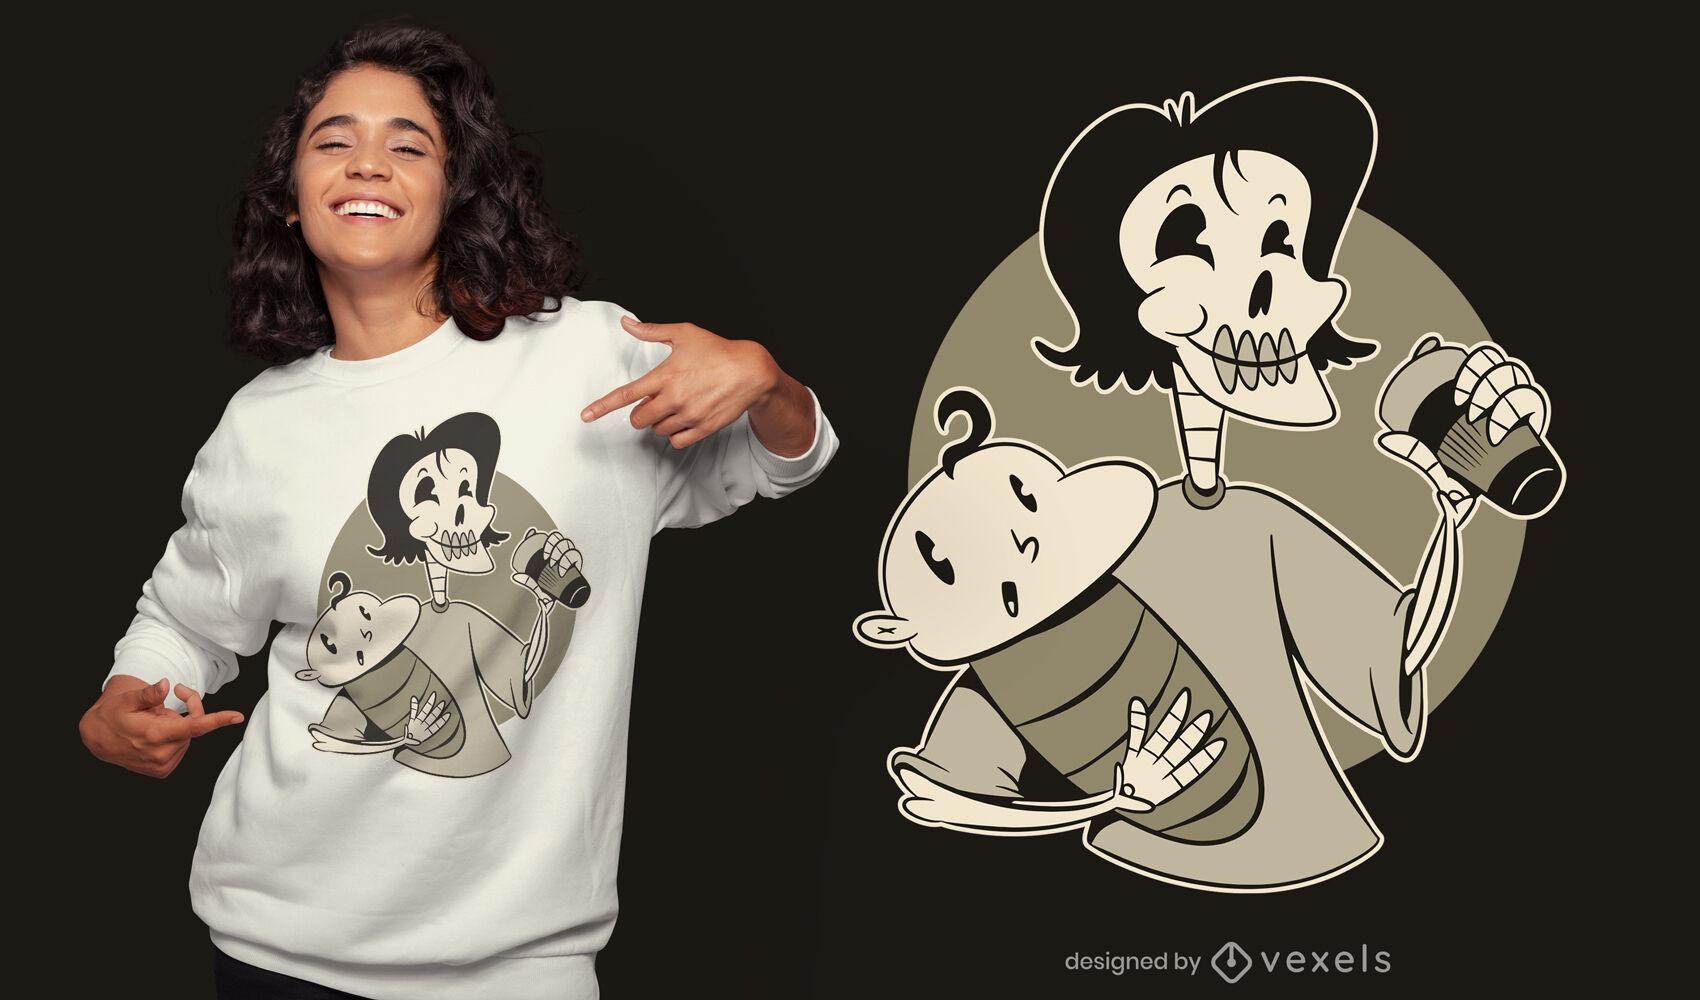 Skeleton mother and baby t-shirt design